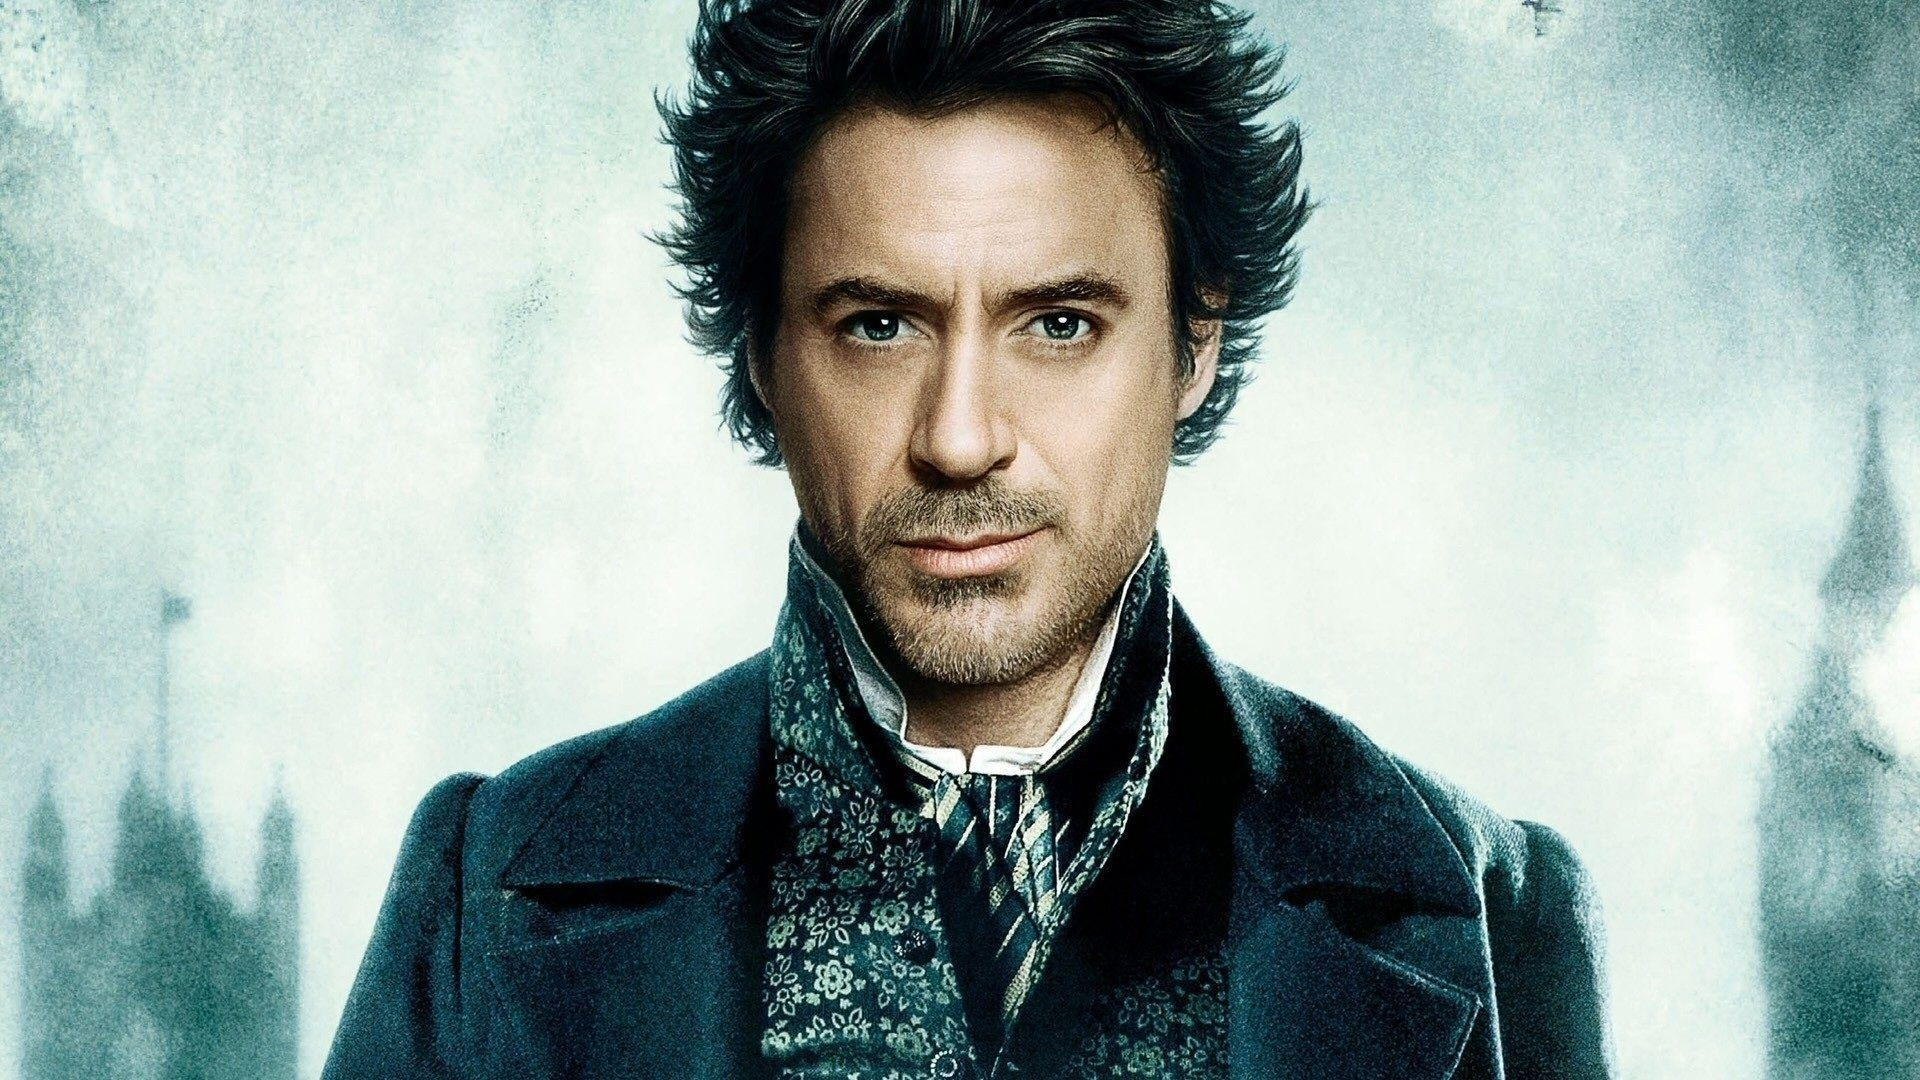 robert downey jr sherlock holmes wallpapers - wallpaper cave